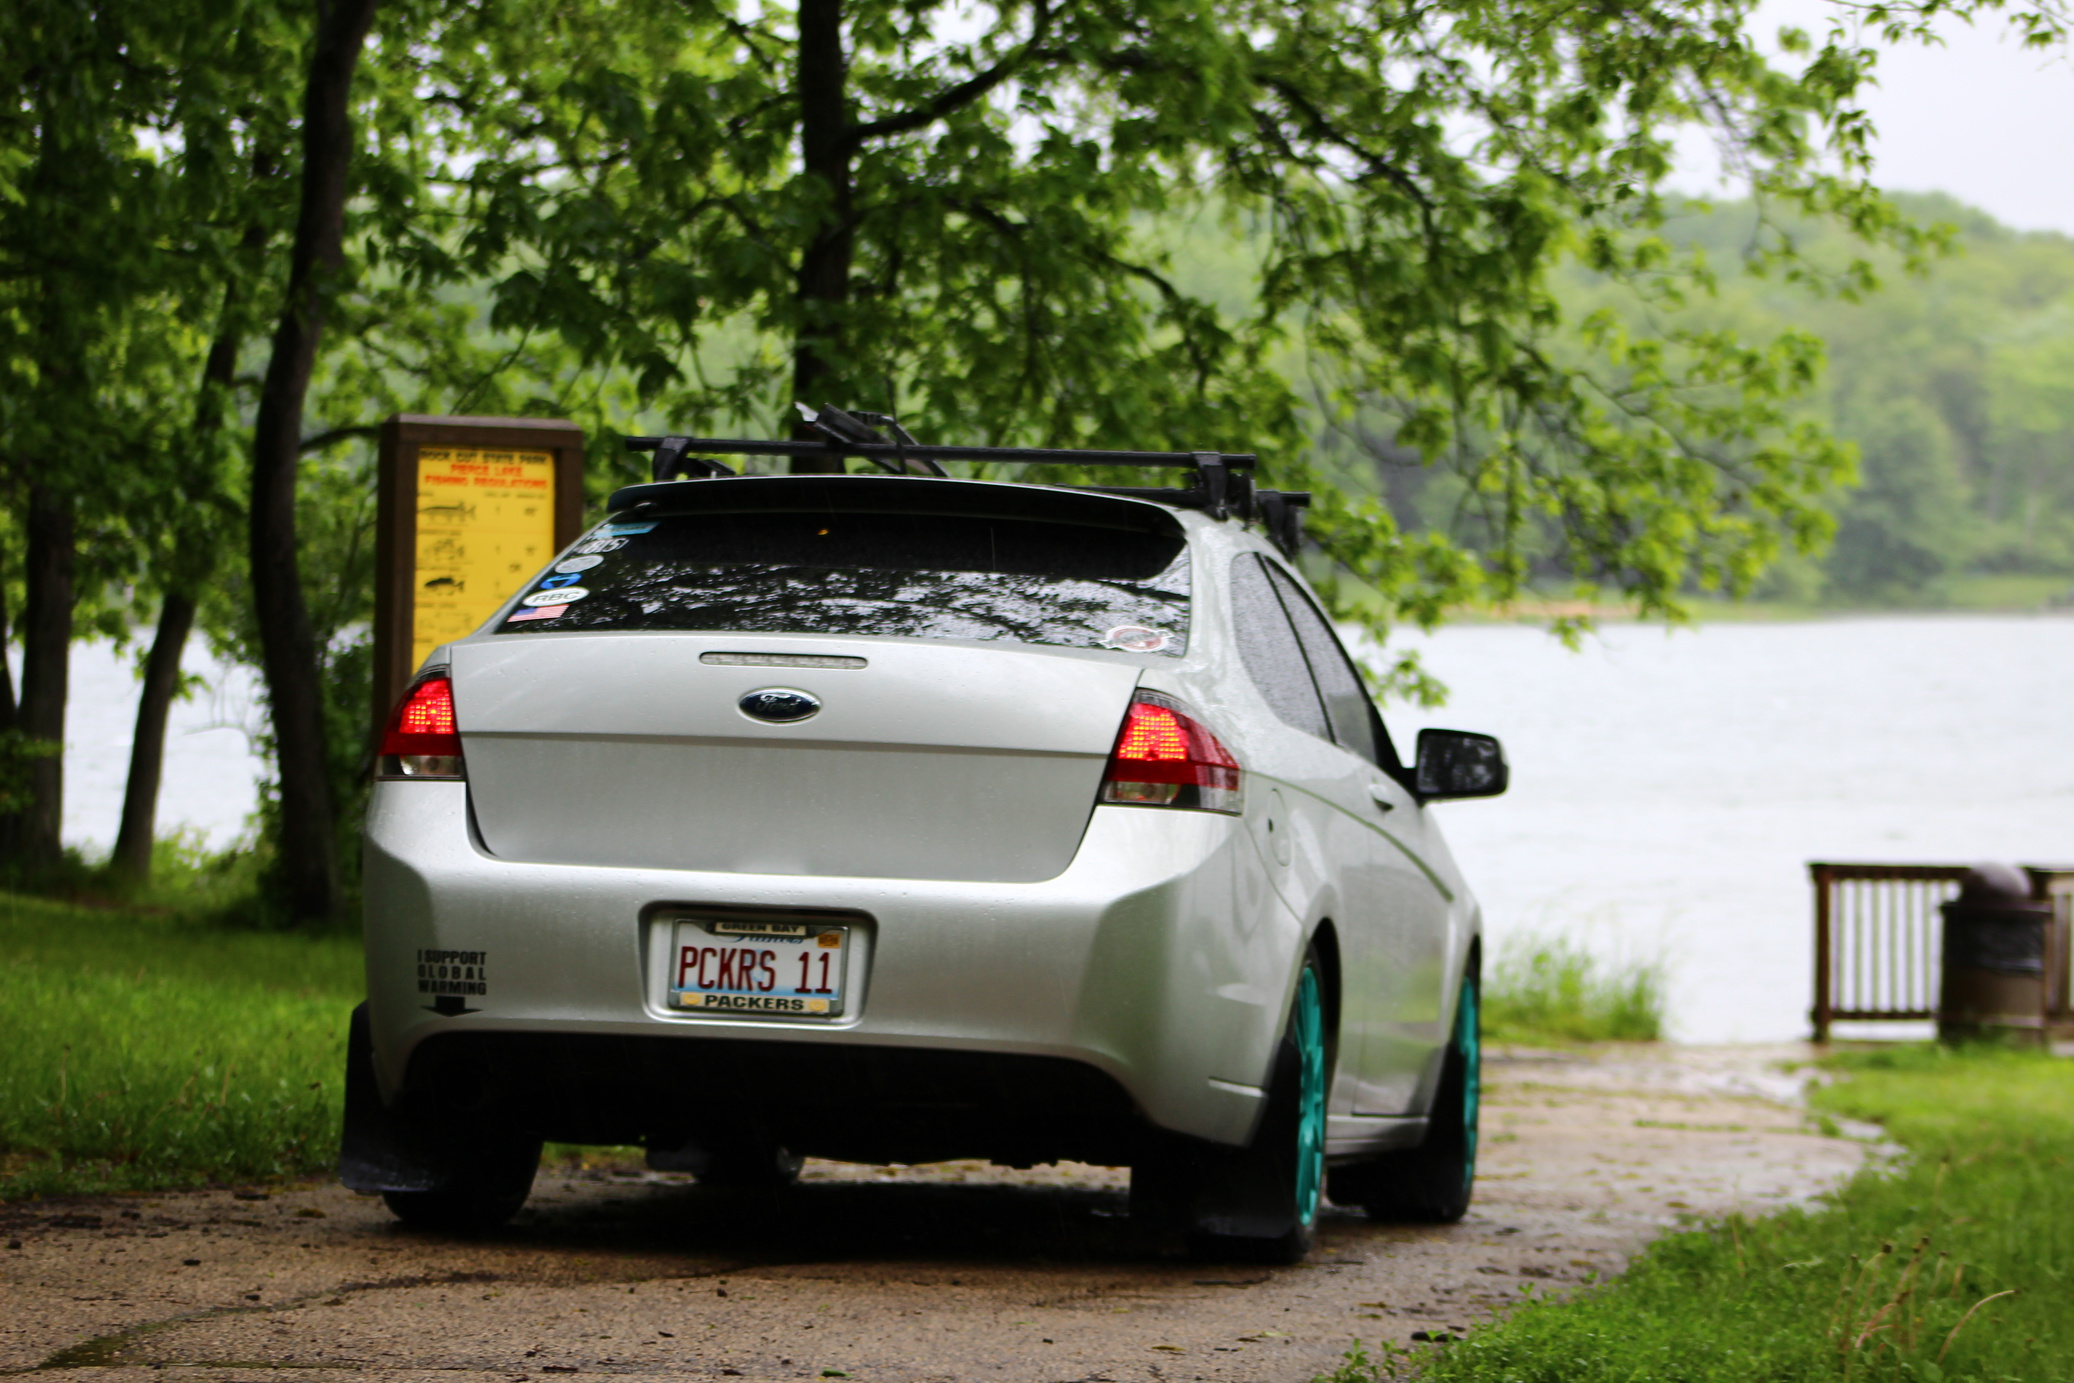 Mud flaps for 2008 coupe img_1296 jpg